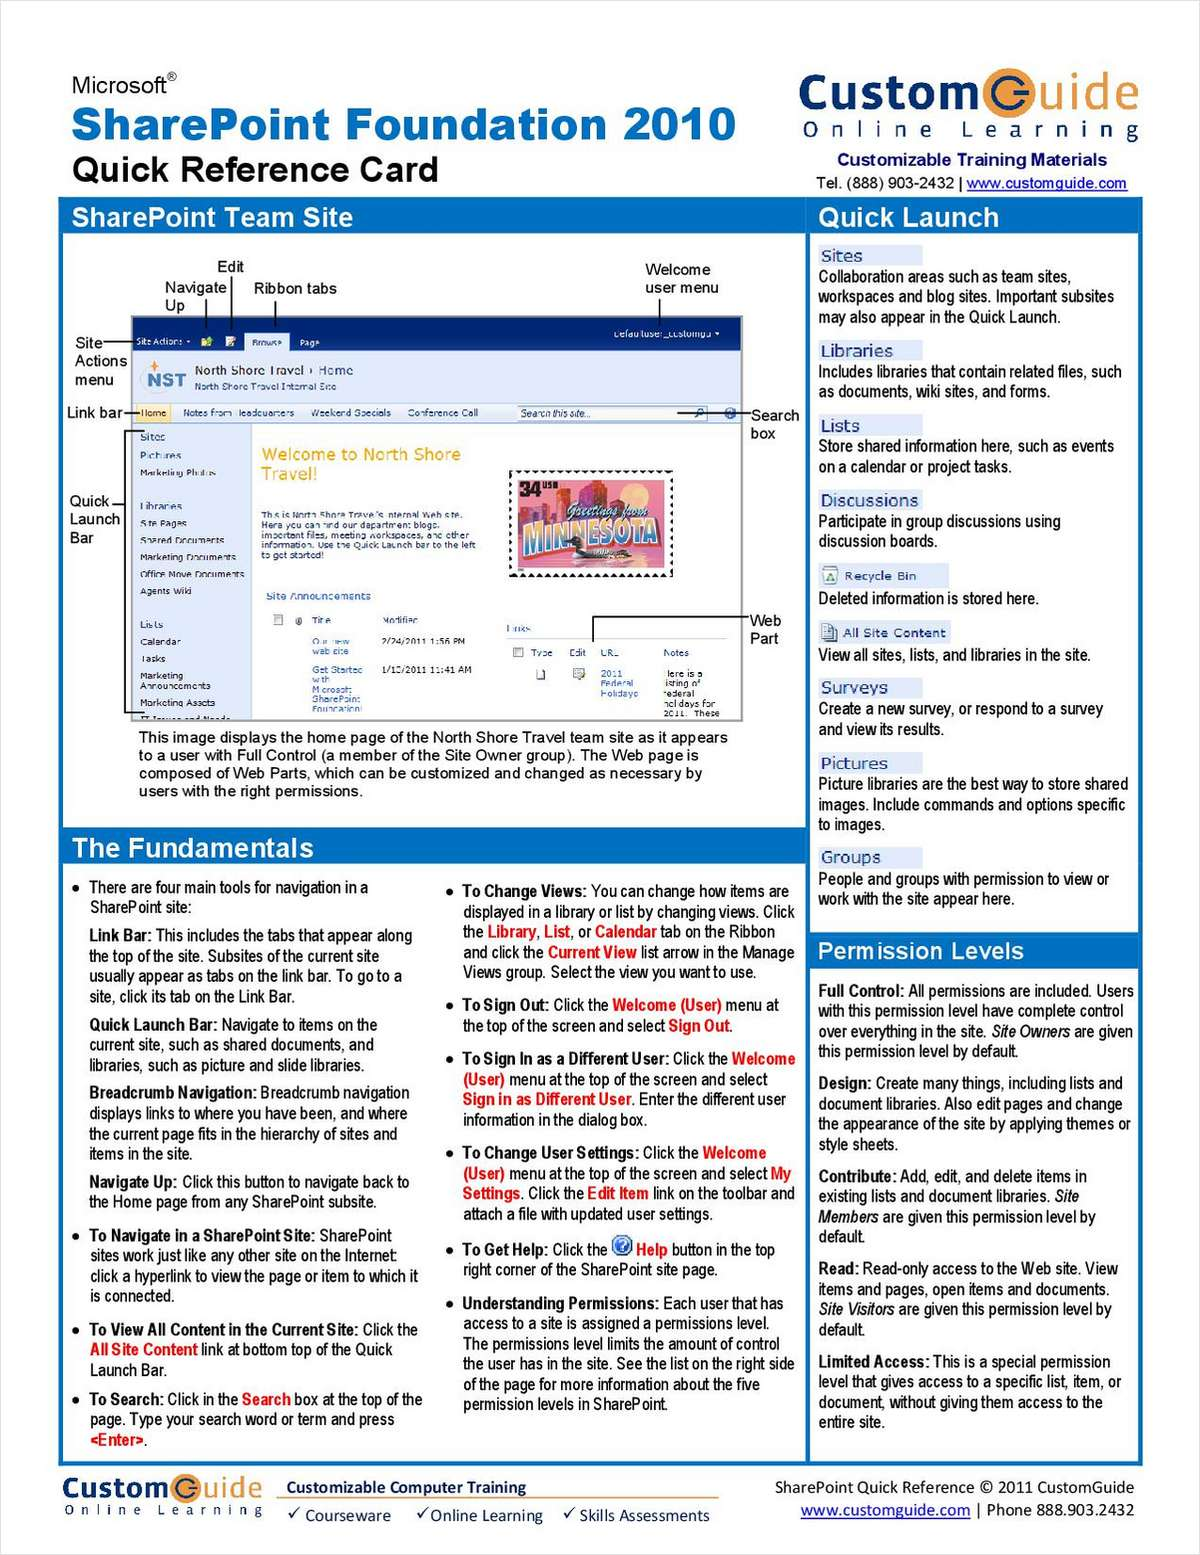 Share Point Foundation 2010 -- Free Quick Reference Card